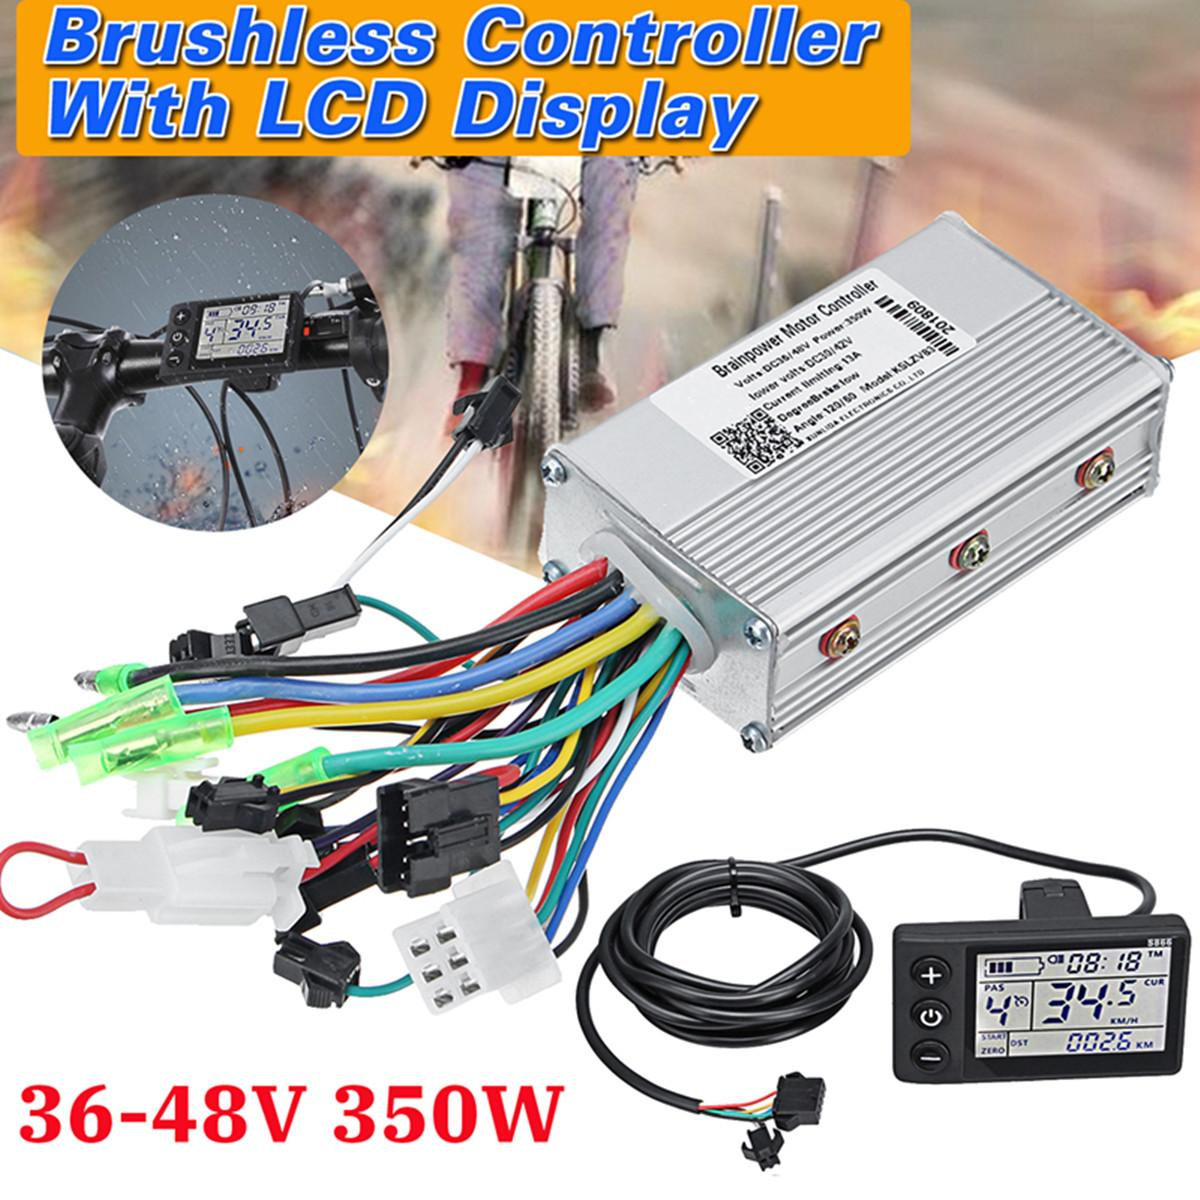 24V-48V 350W Brushless Motor Controller unit for Scooter E-Bike Motor Brushless Motor Controller with LCD24V-48V 350W Brushless Motor Controller unit for Scooter E-Bike Motor Brushless Motor Controller with LCD